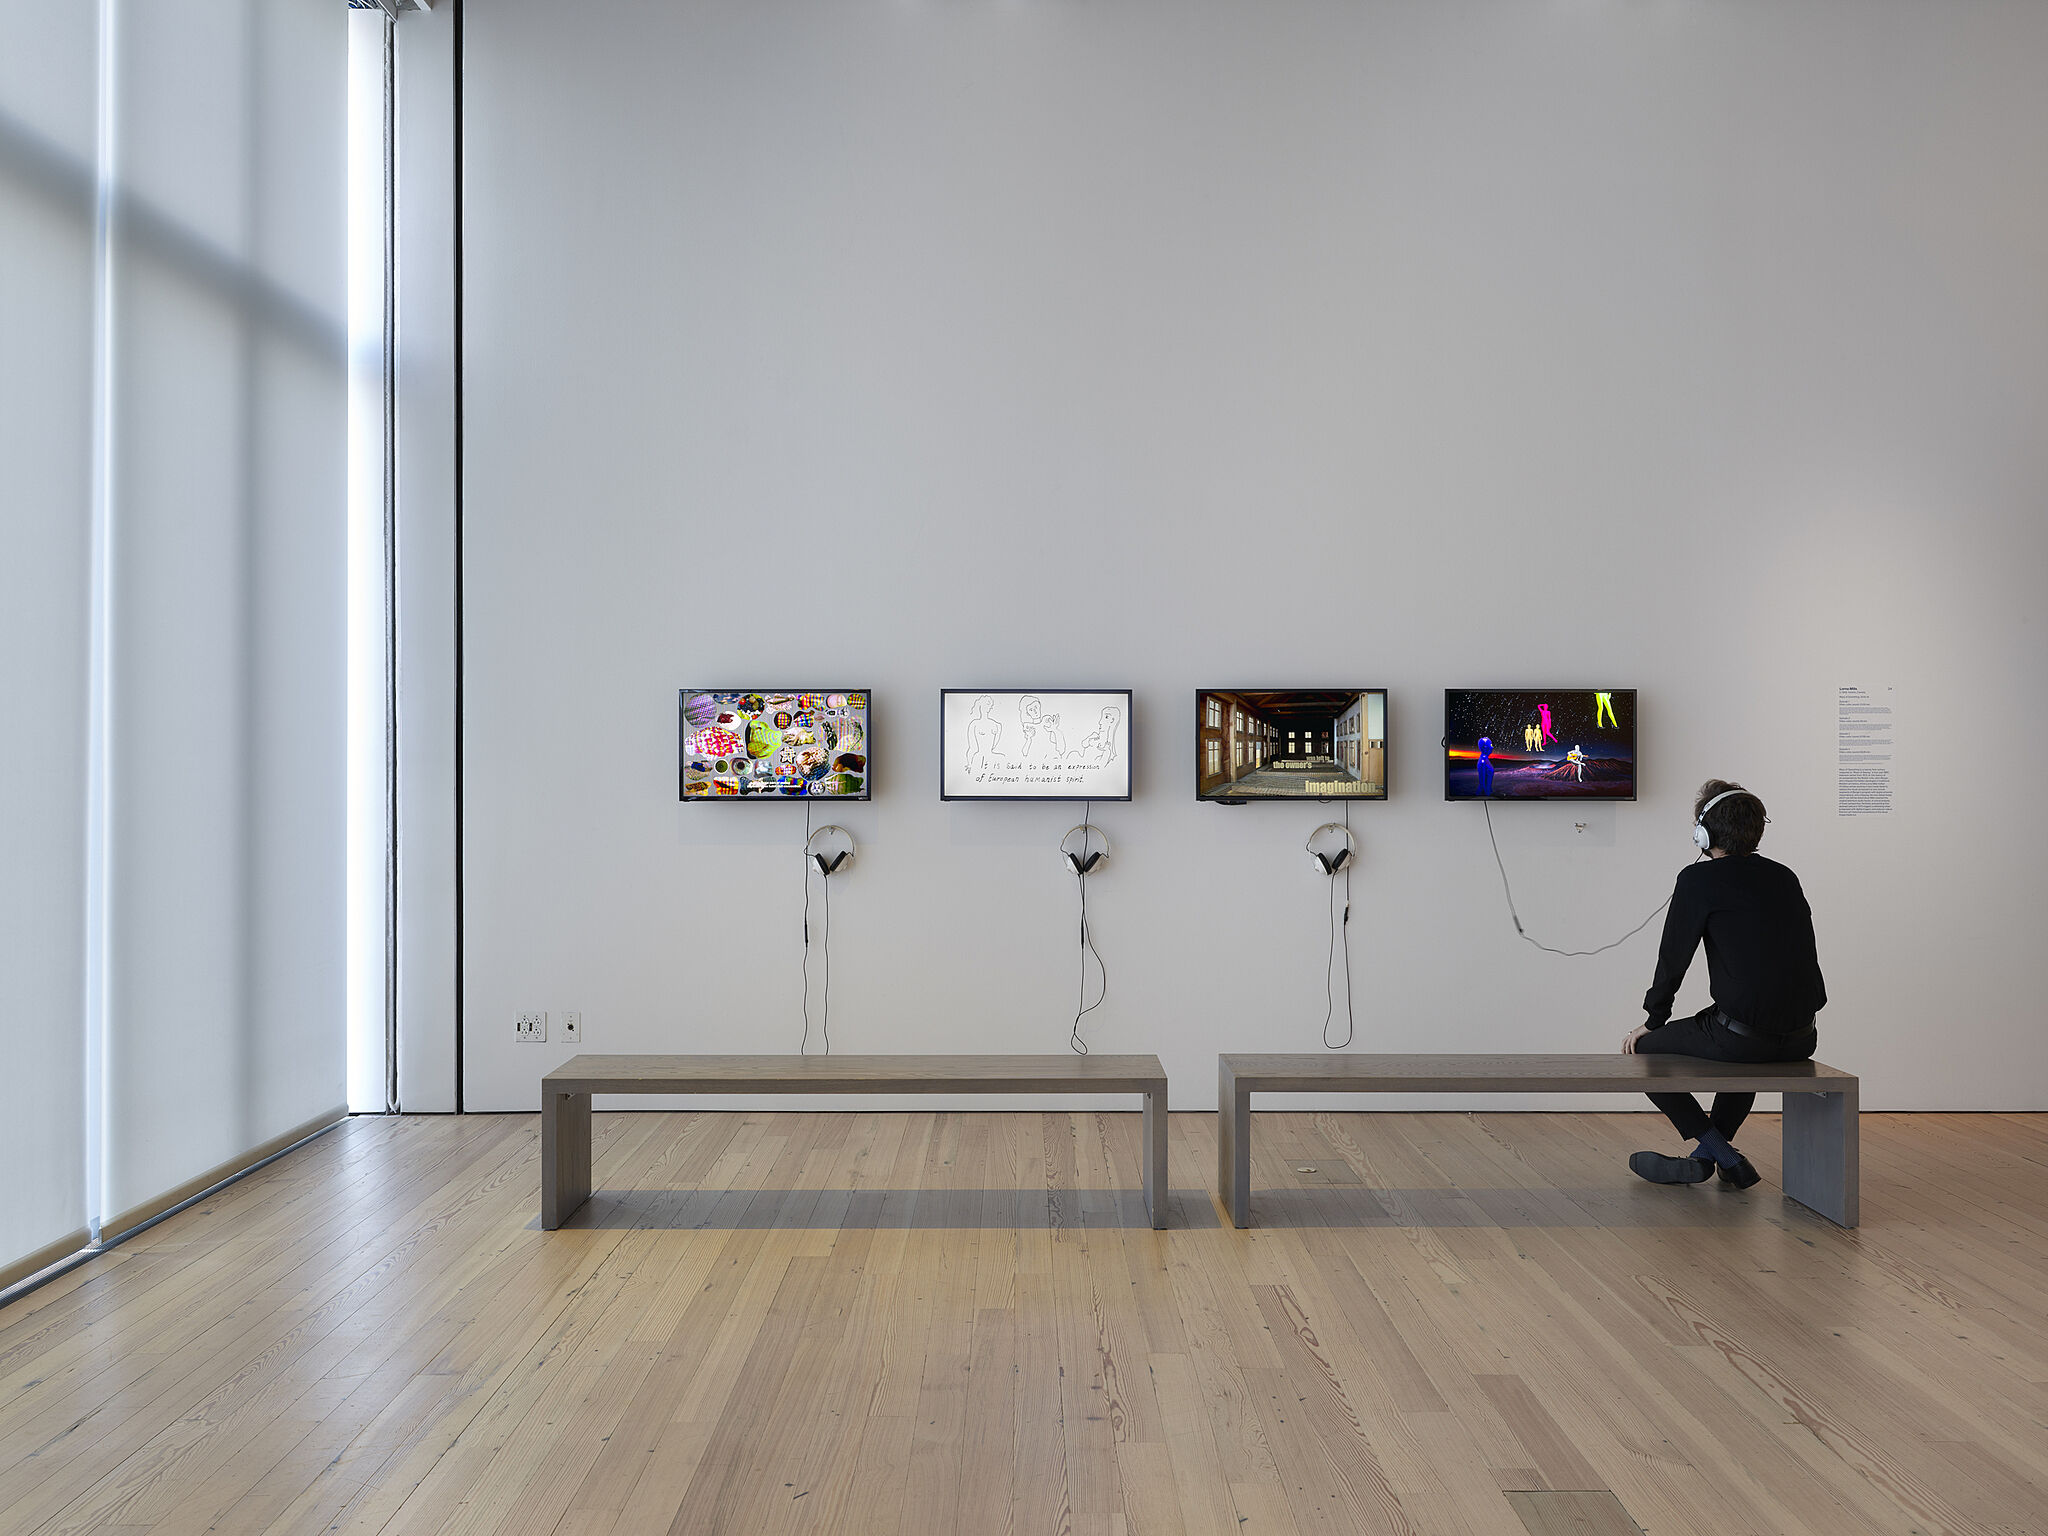 A man sits on a bench in front of four video screens on a gallery wall.